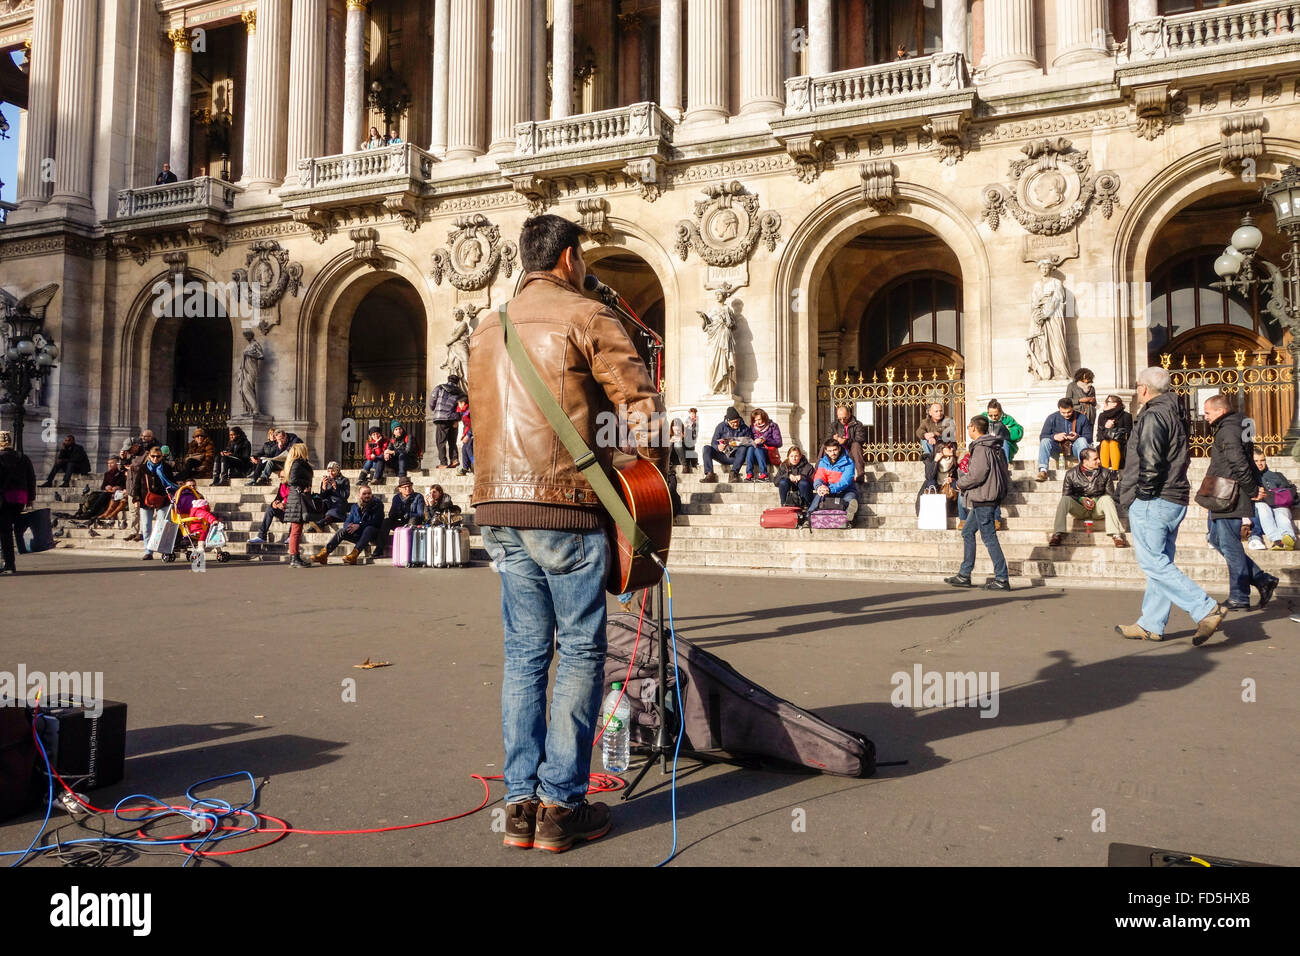 Street musician playing in front of the Palais Garnier, Opera House in Paris, France. - Stock Image